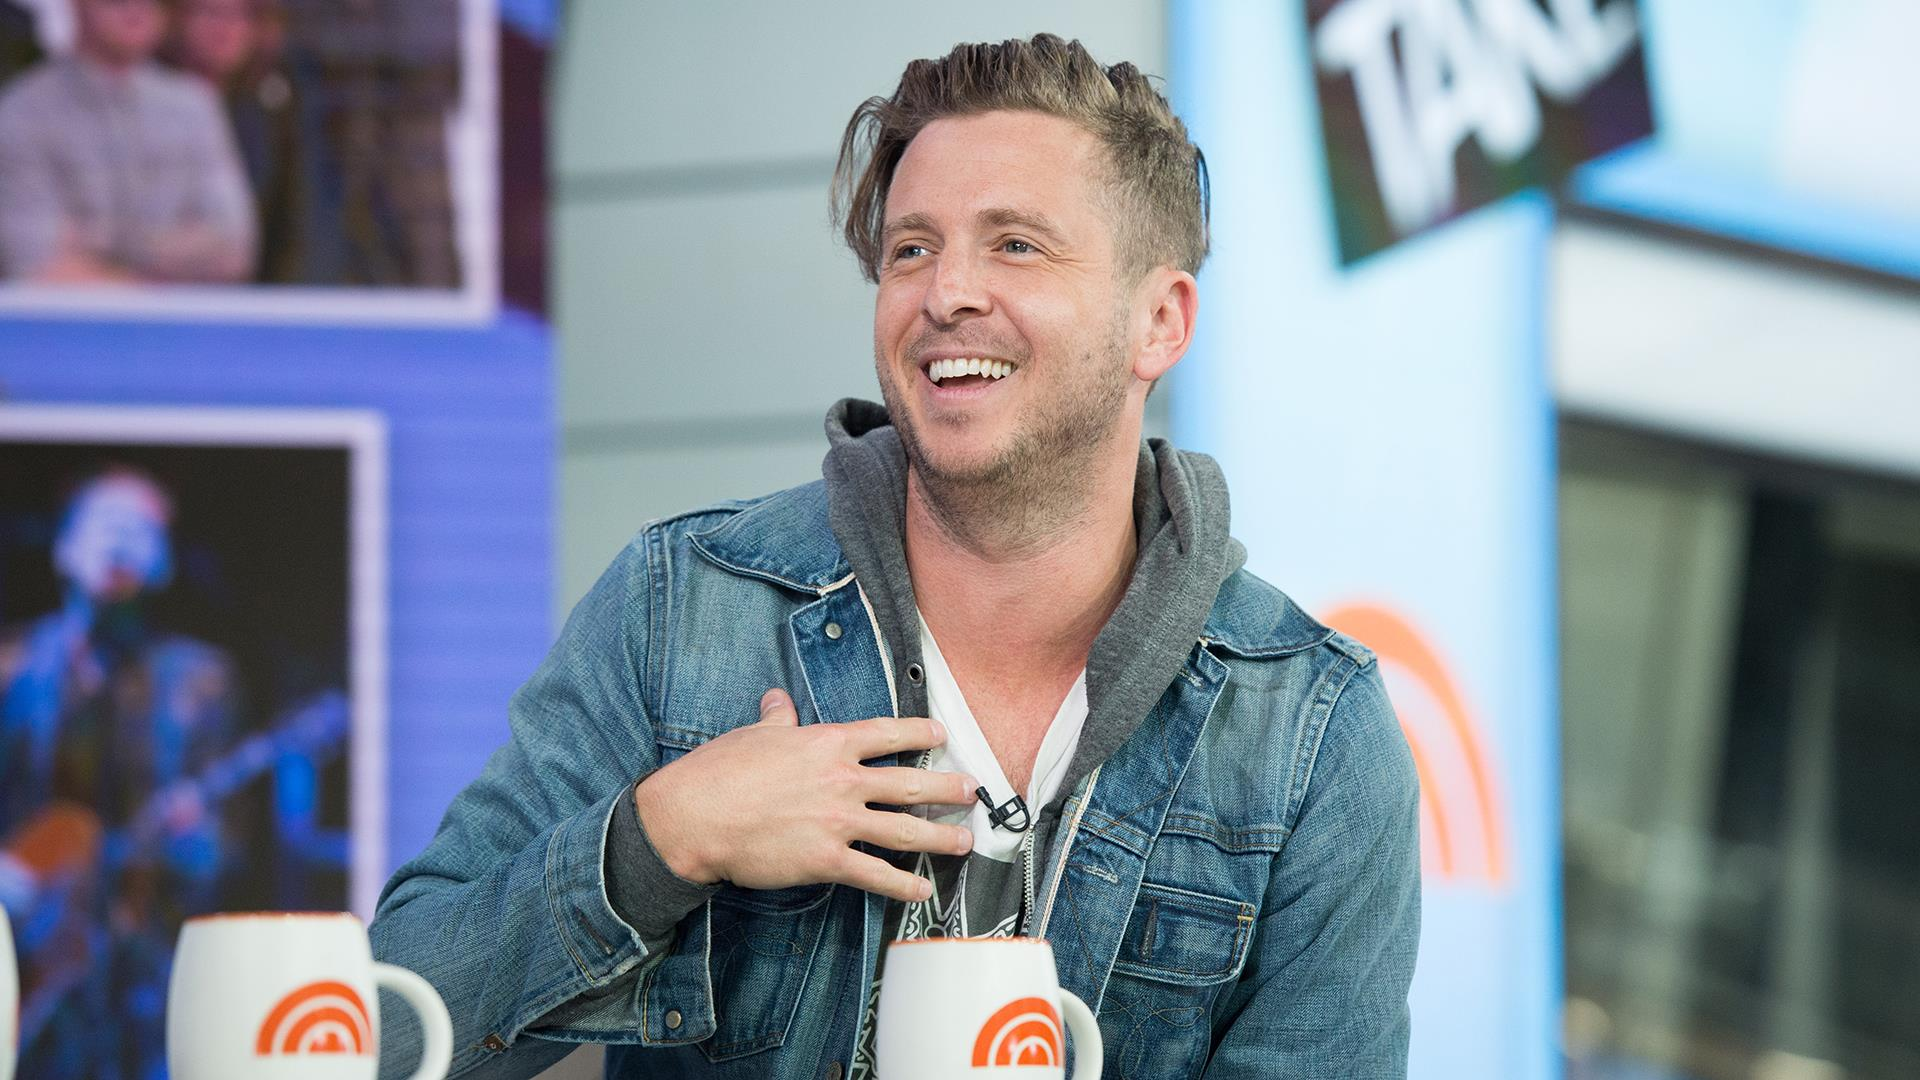 Onerepublic Frontman Ryan Tedder On Songwriting Touring